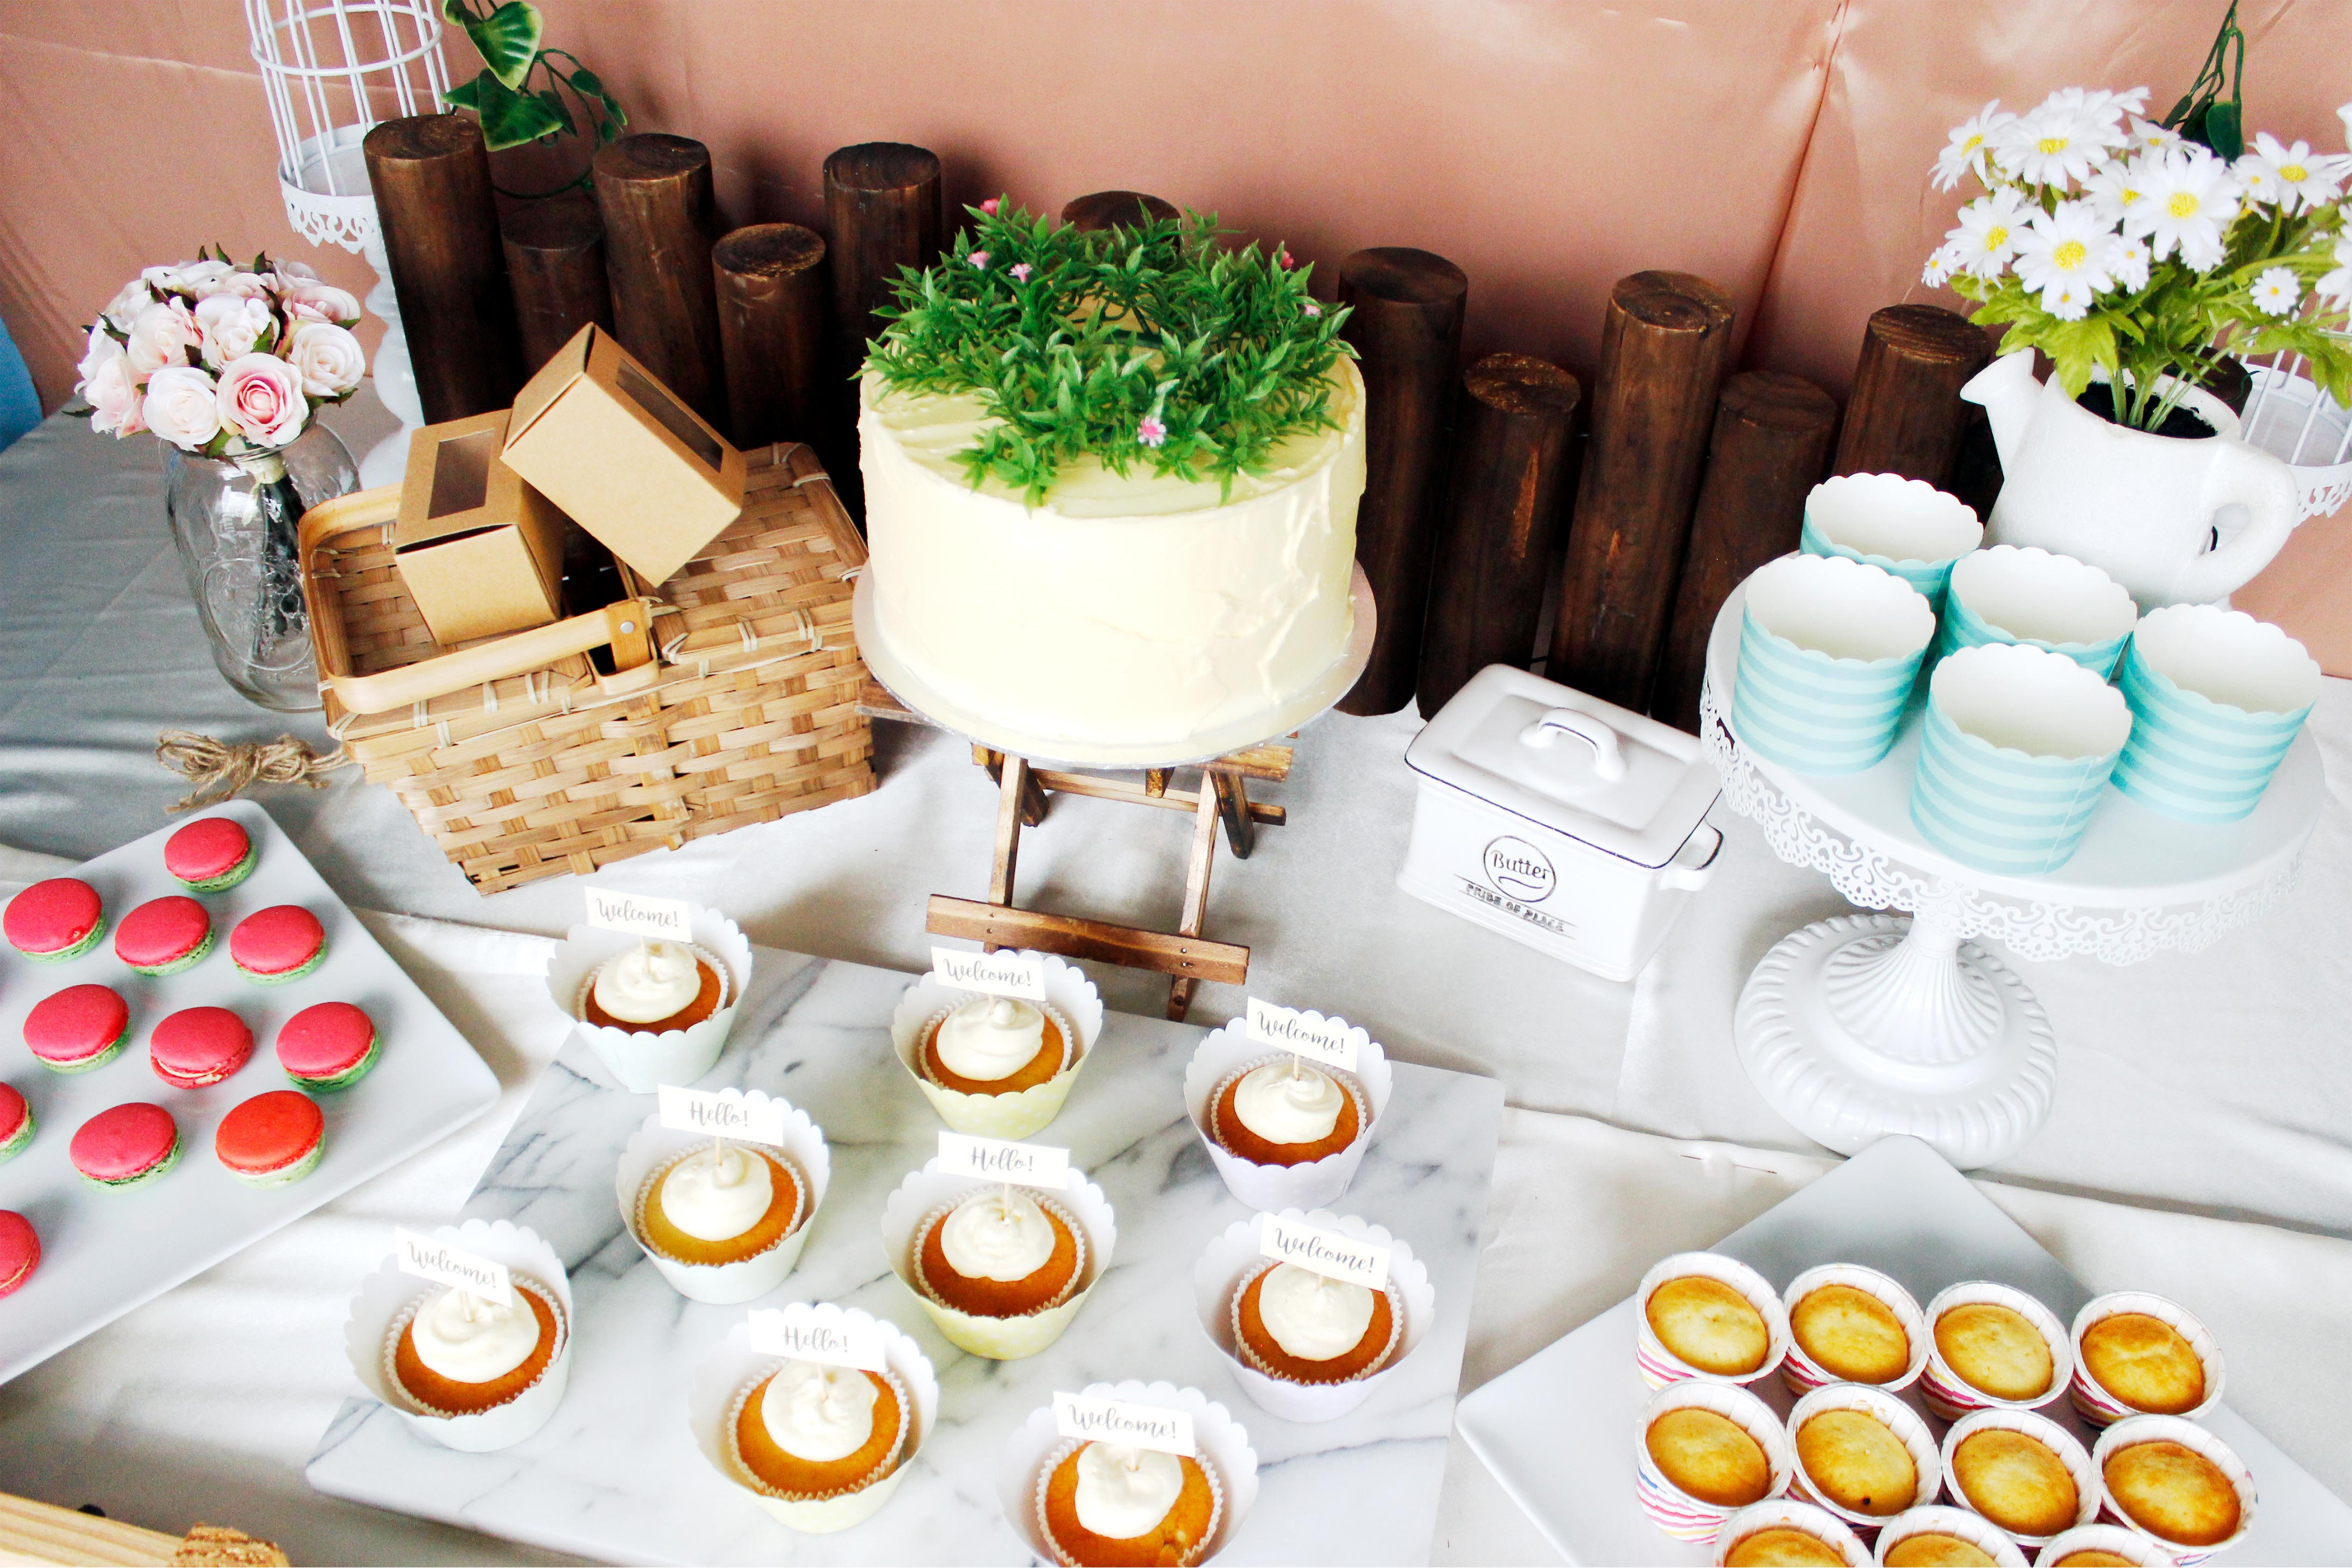 12 instagram worthy catering for your 21st birthday party